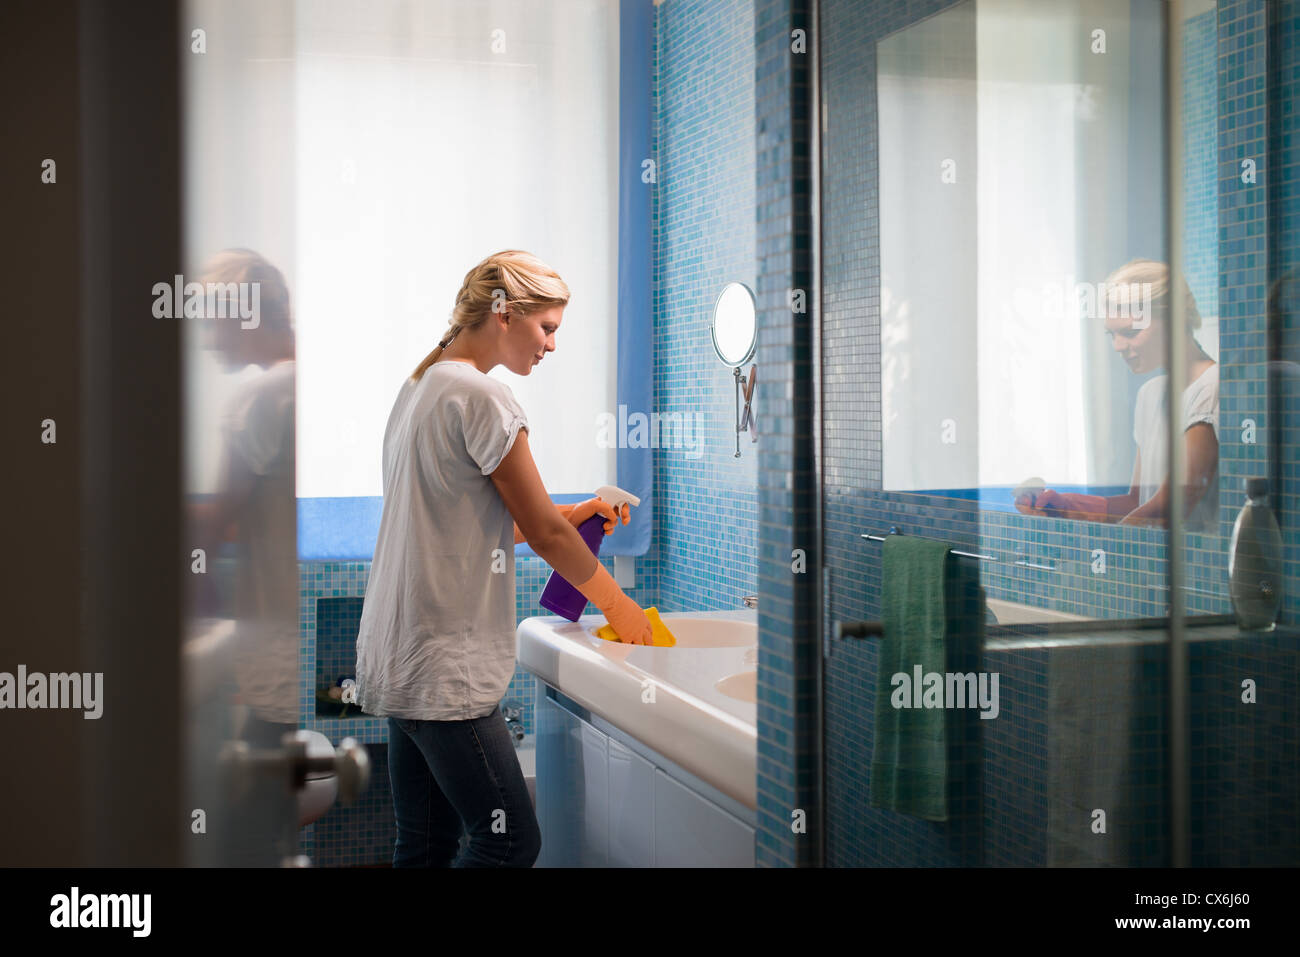 Housework and domestic lifestyle: woman doing chores in bathroom at home, cleaning wash basin and tap with spray - Stock Image